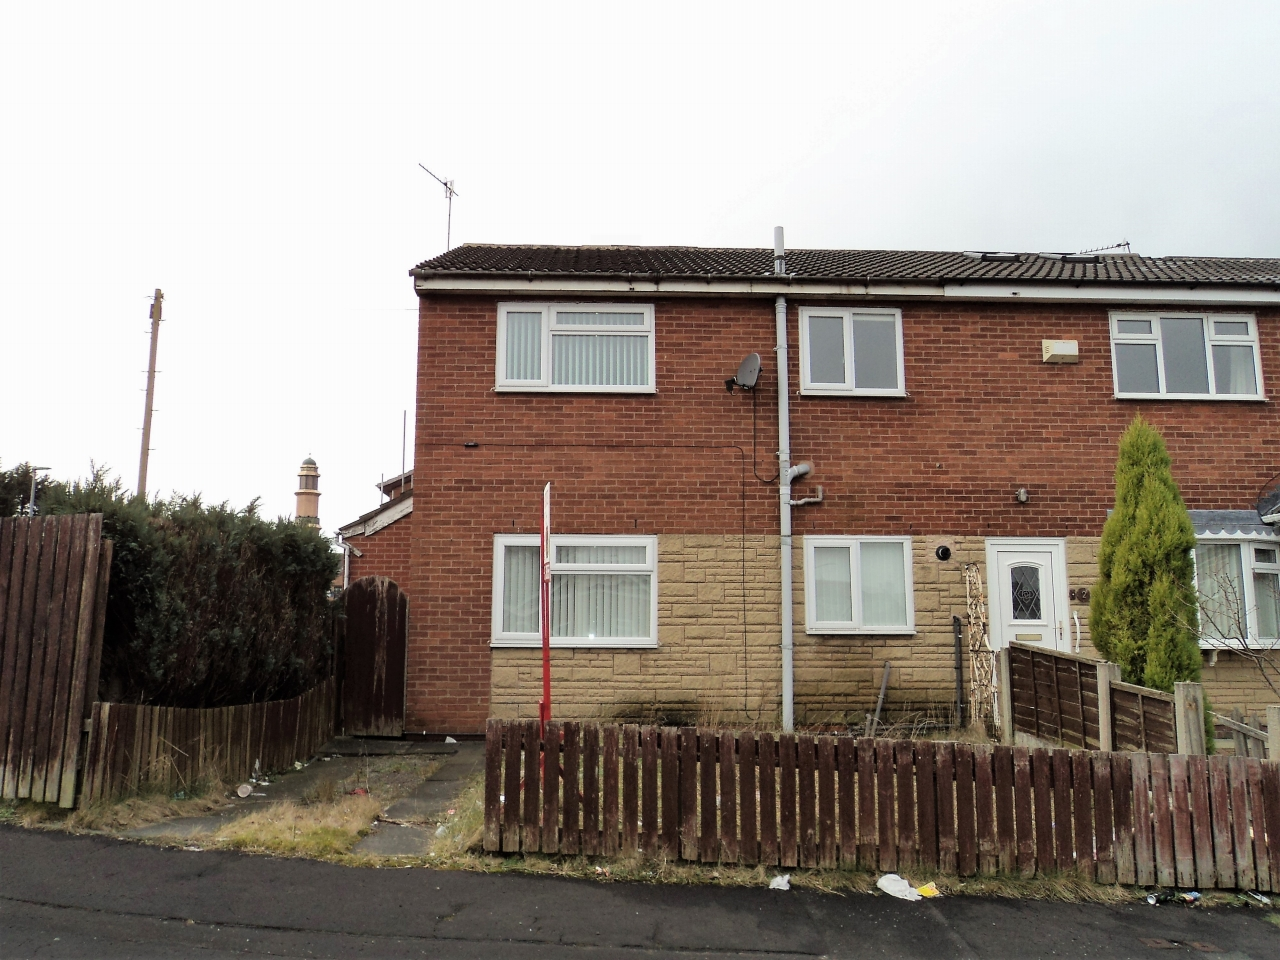 1 Bedroom End Terraced House To Rent - Photograph 1